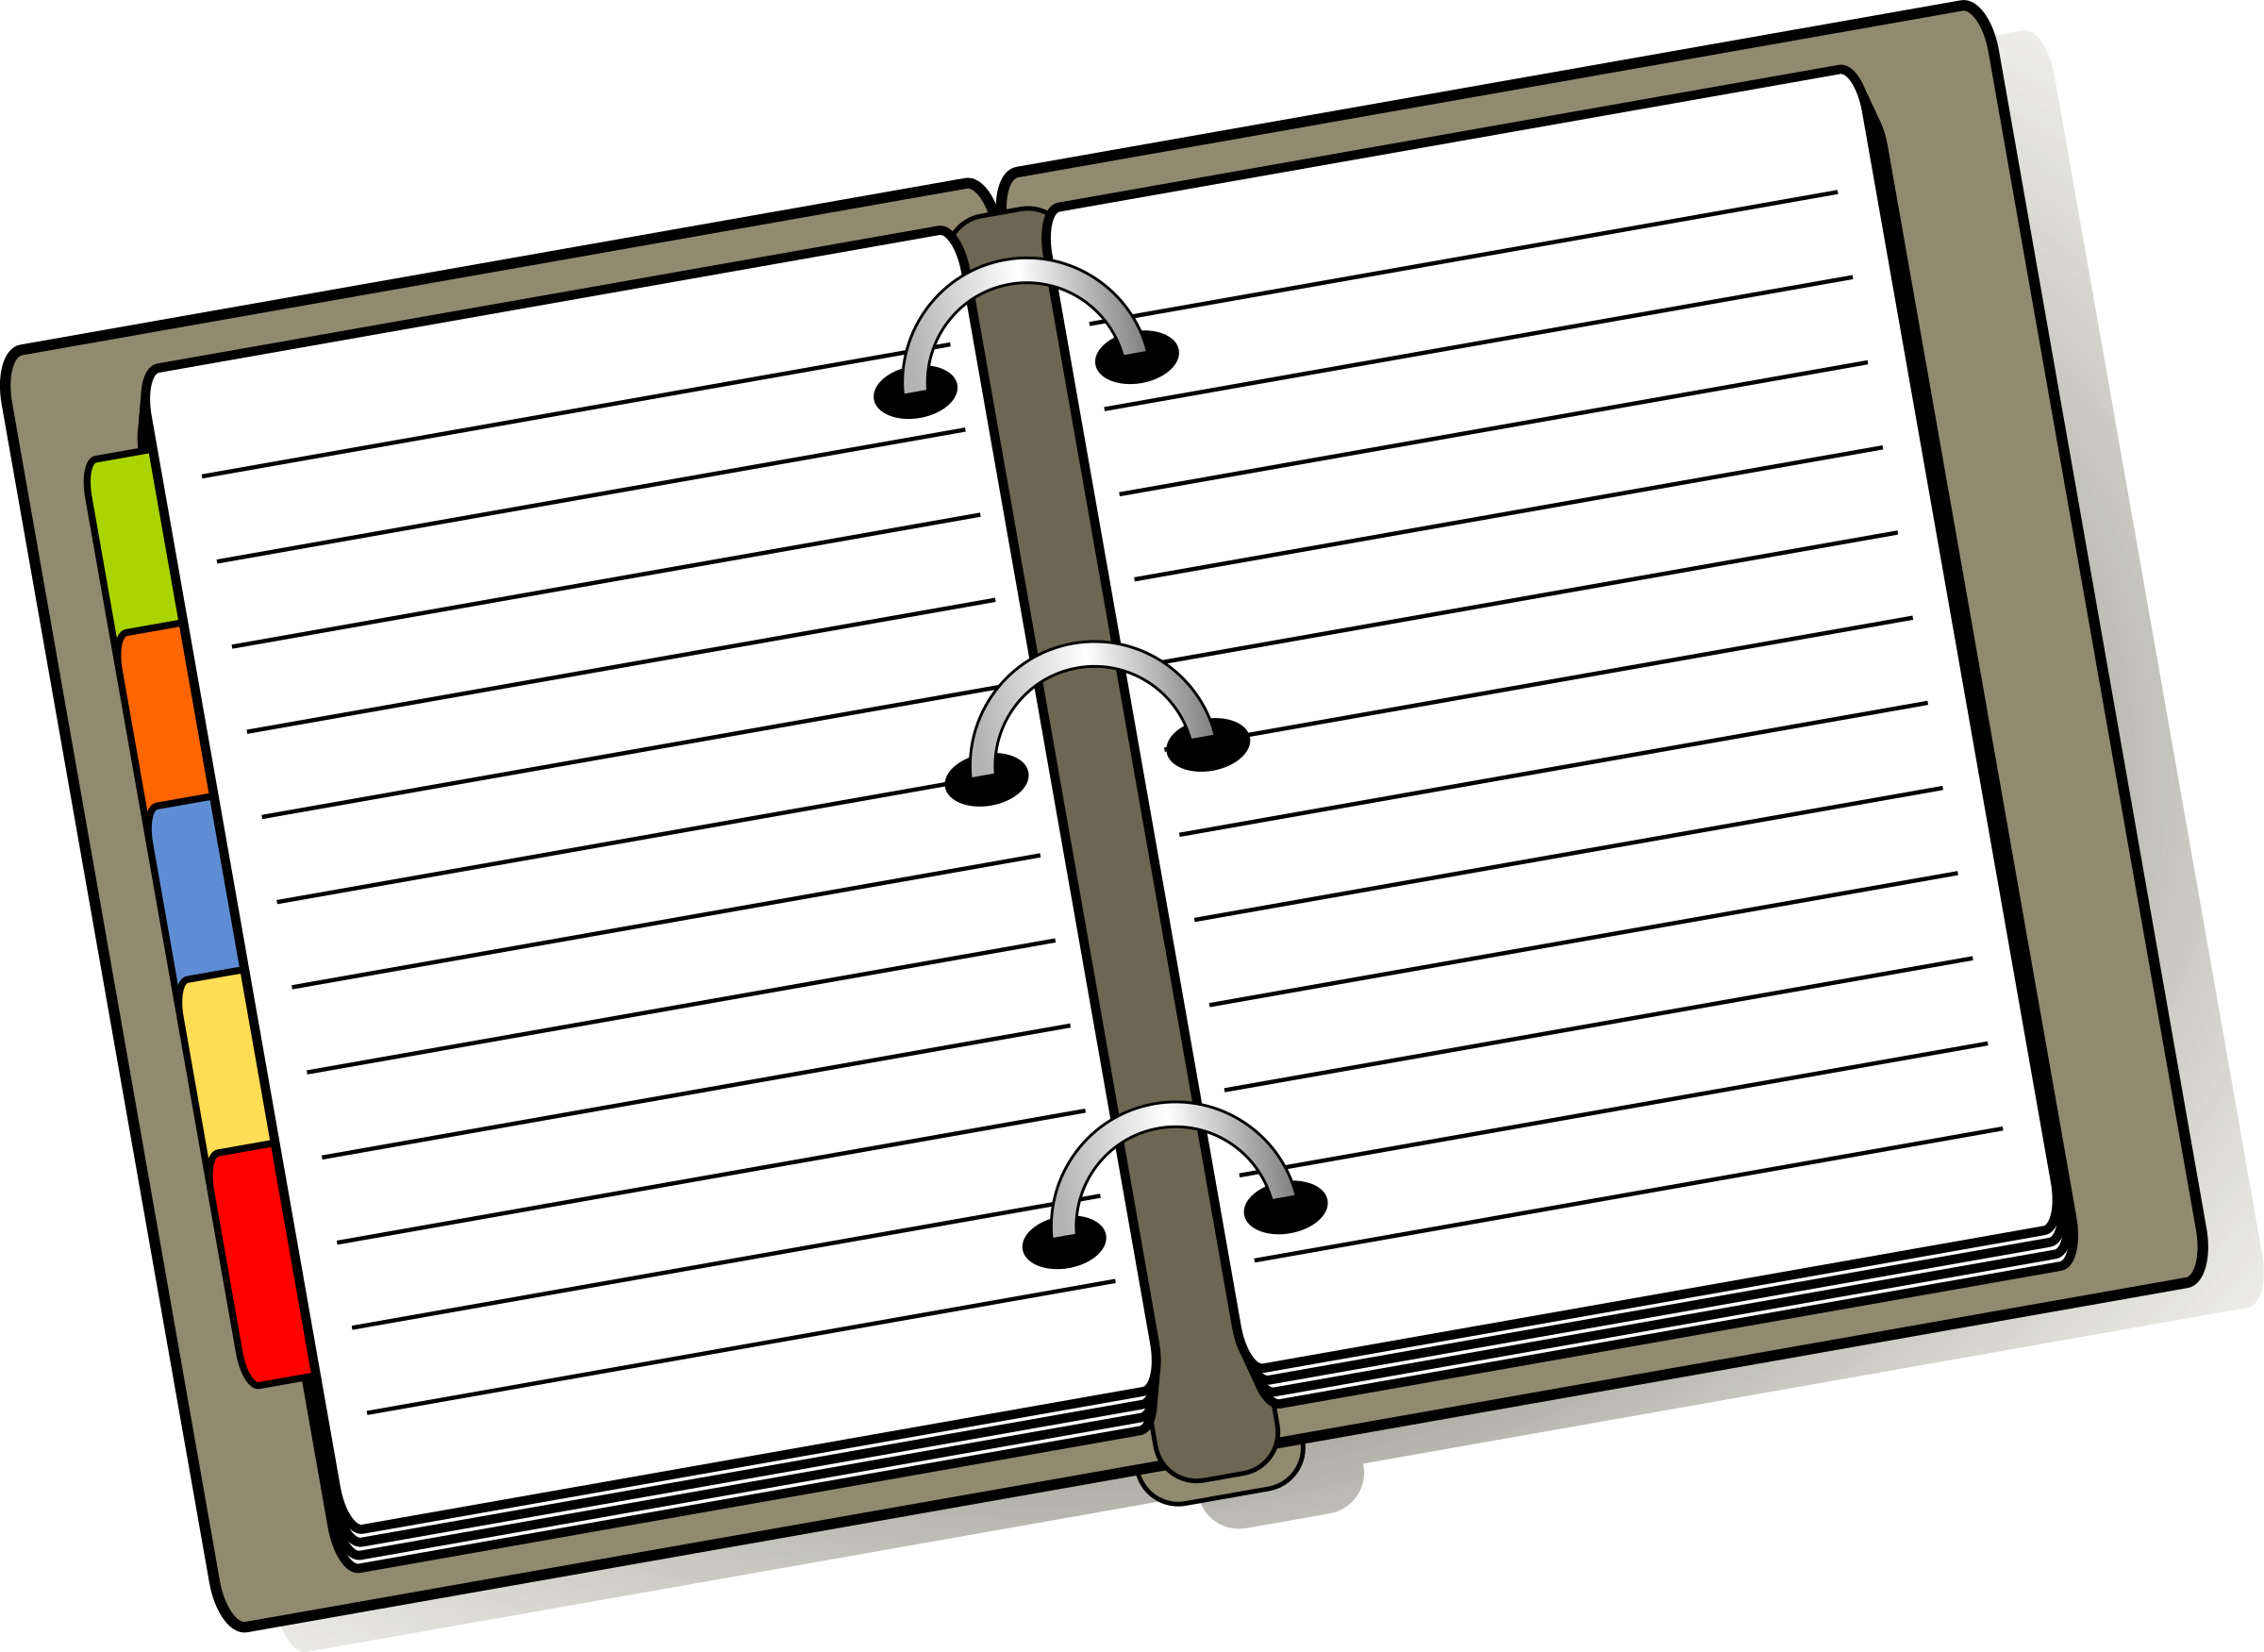 Diary big image png. Planner clipart weekly planner